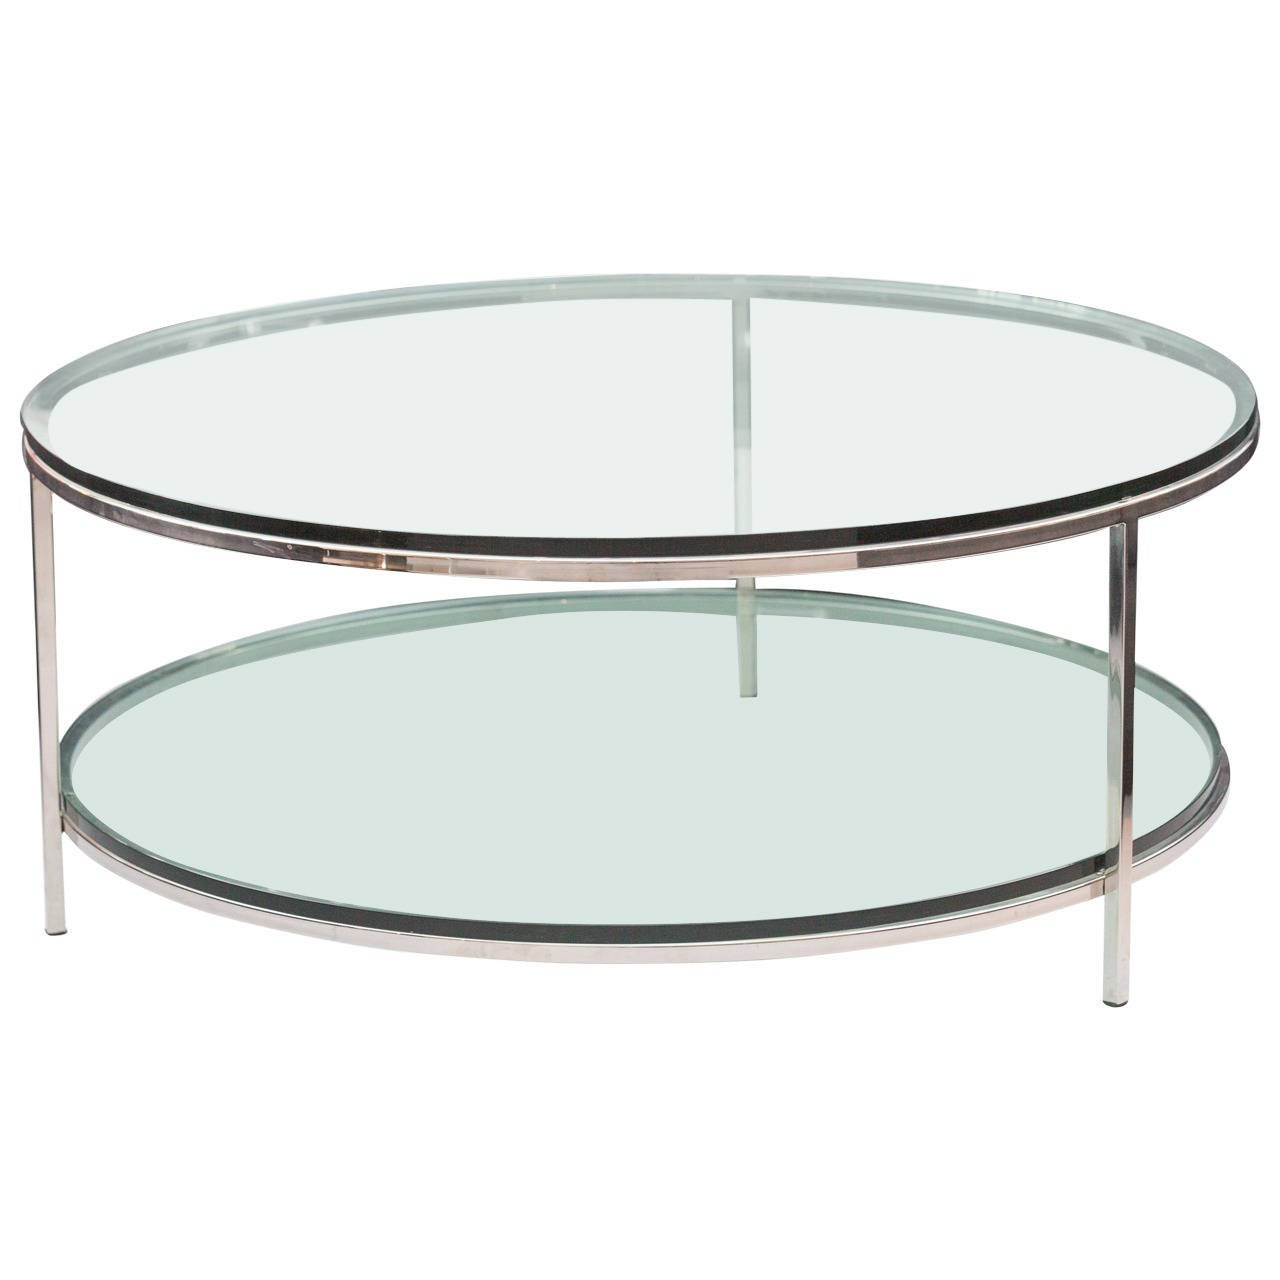 Milo baughman two tier coffee table at 1stdibs for 2 level glass coffee table